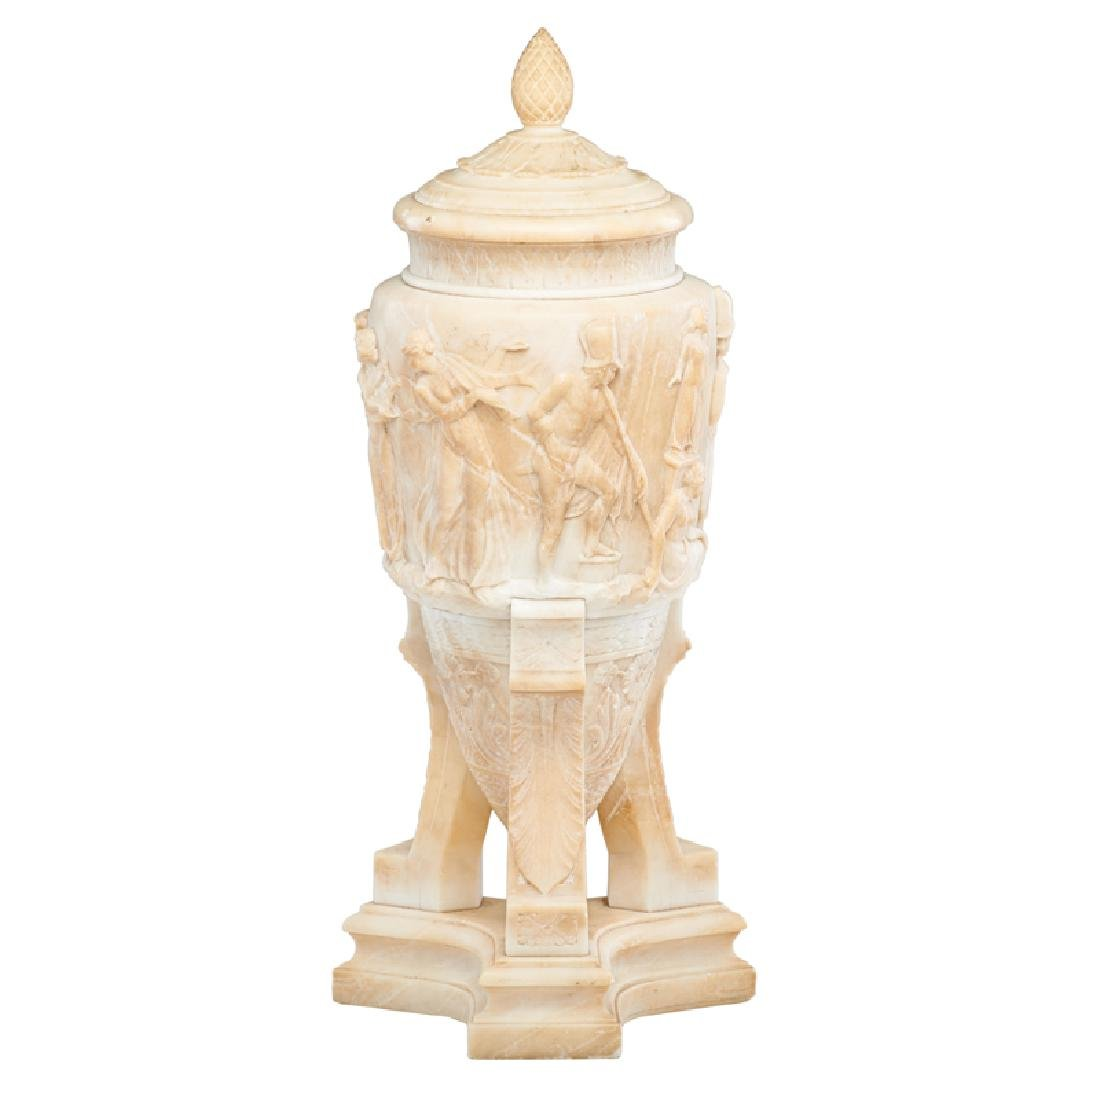 NEOCLASSICAL STYLE ALABASTER LAMP